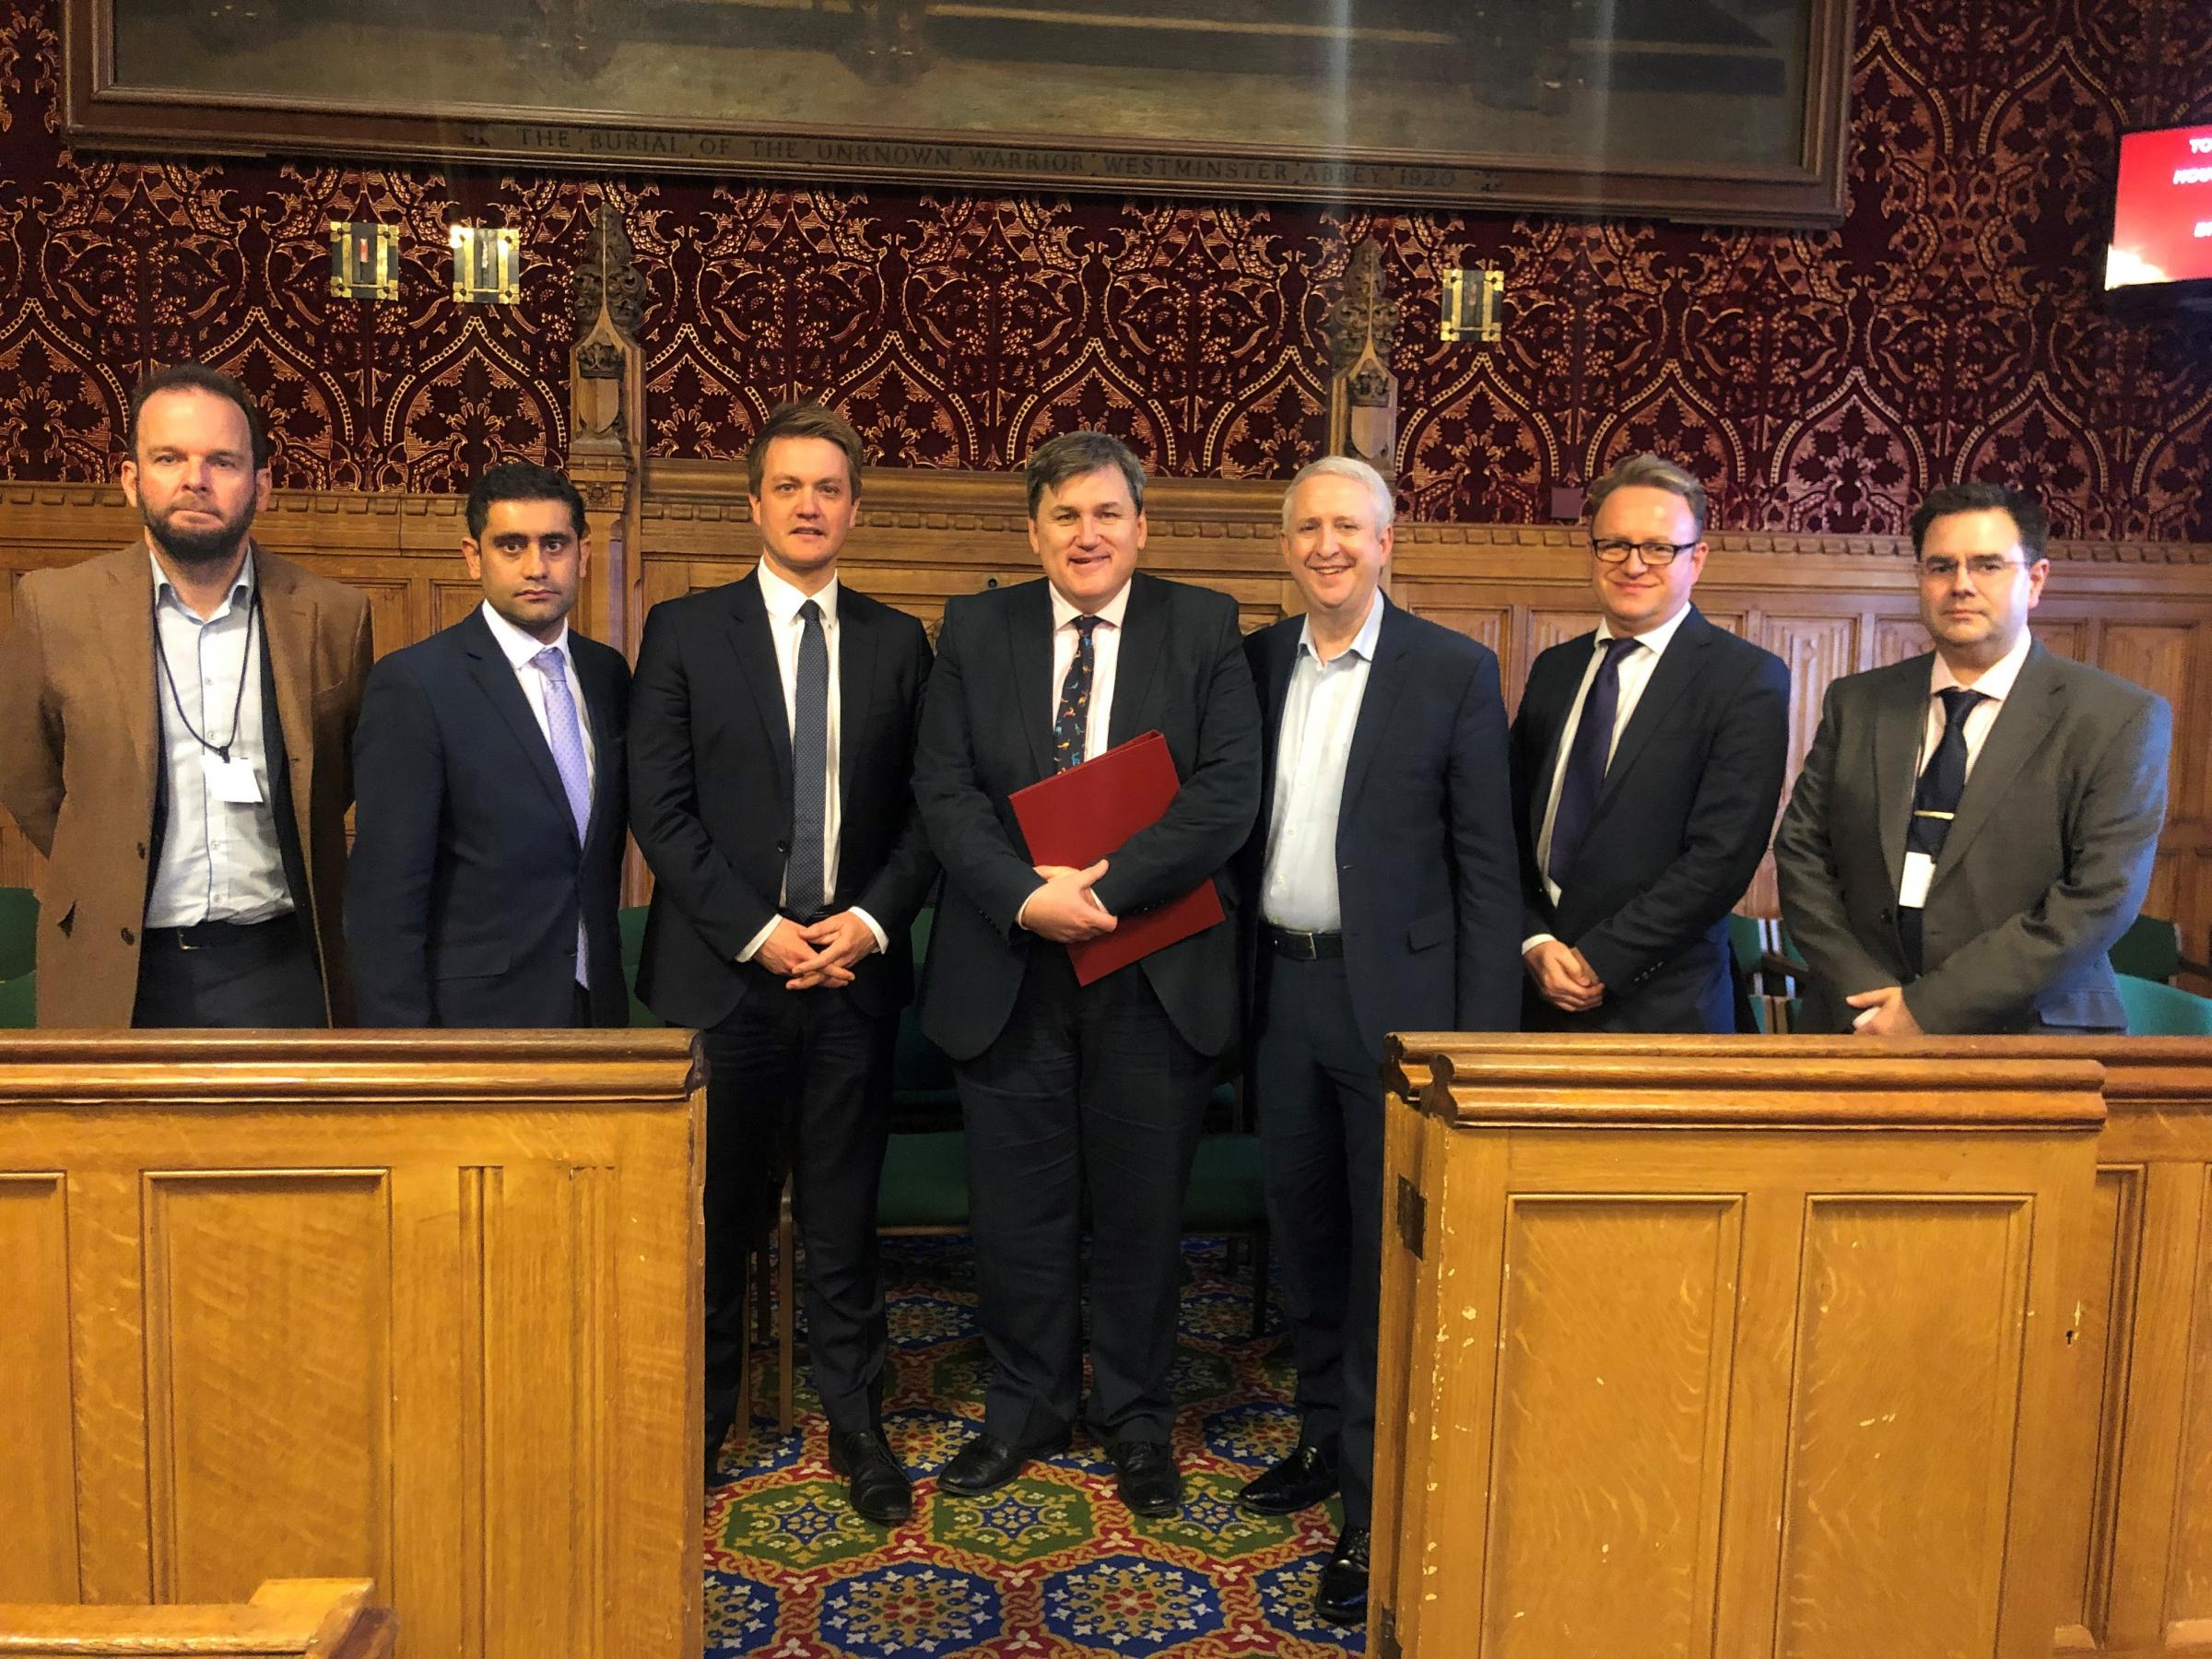 CROSS-PARTY: Cllr James Daly (left), Cllr Rishi Shori, James Frith MP, housing minister Kit Malthouse, Ivan Lewis MP, Cllr Tim Pickstone and Bury Keep It Green campaigner Chris Russell